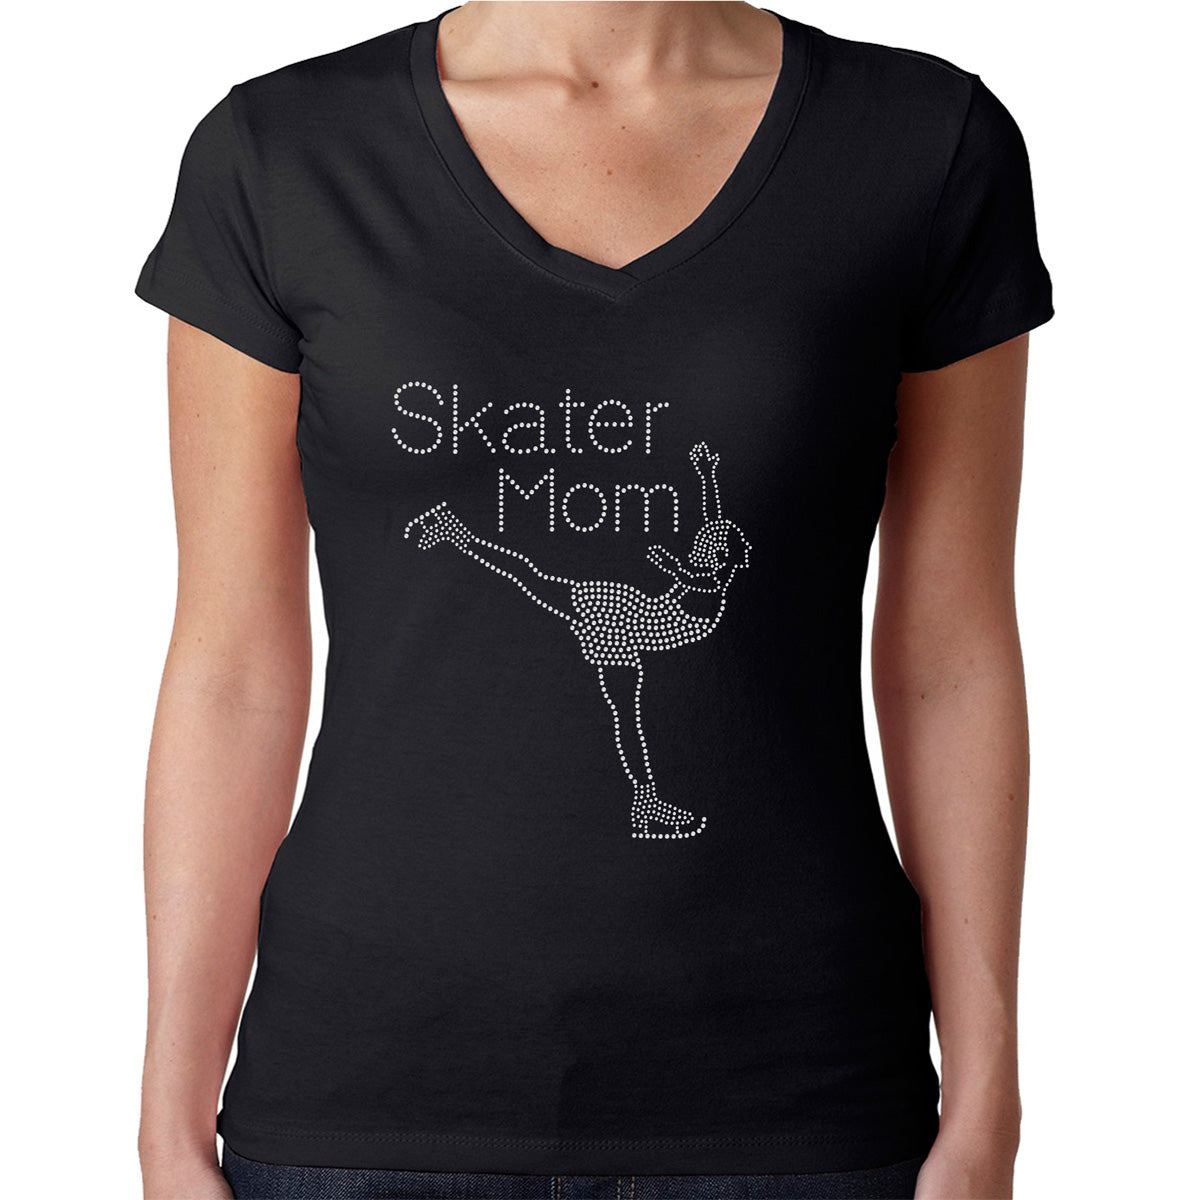 Womens T-Shirt Rhinestone Bling Black Fitted Tee Figure Ice Skater Mom